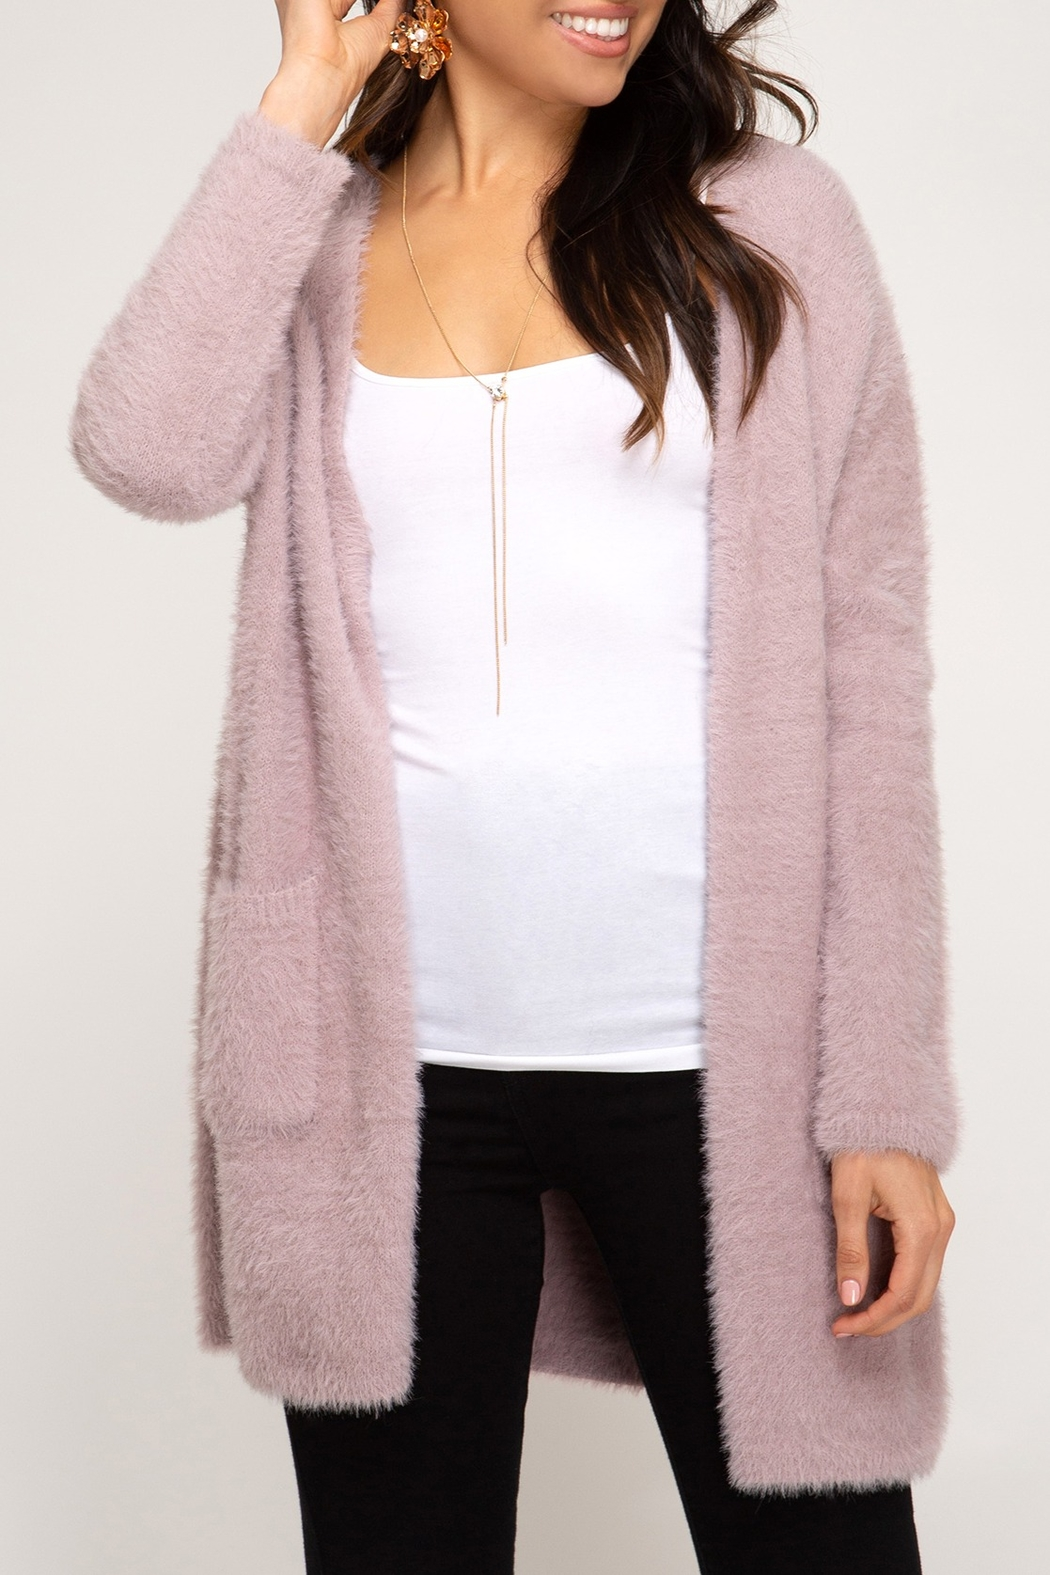 She + Sky Fuzzy Knit Cardigan - Main Image